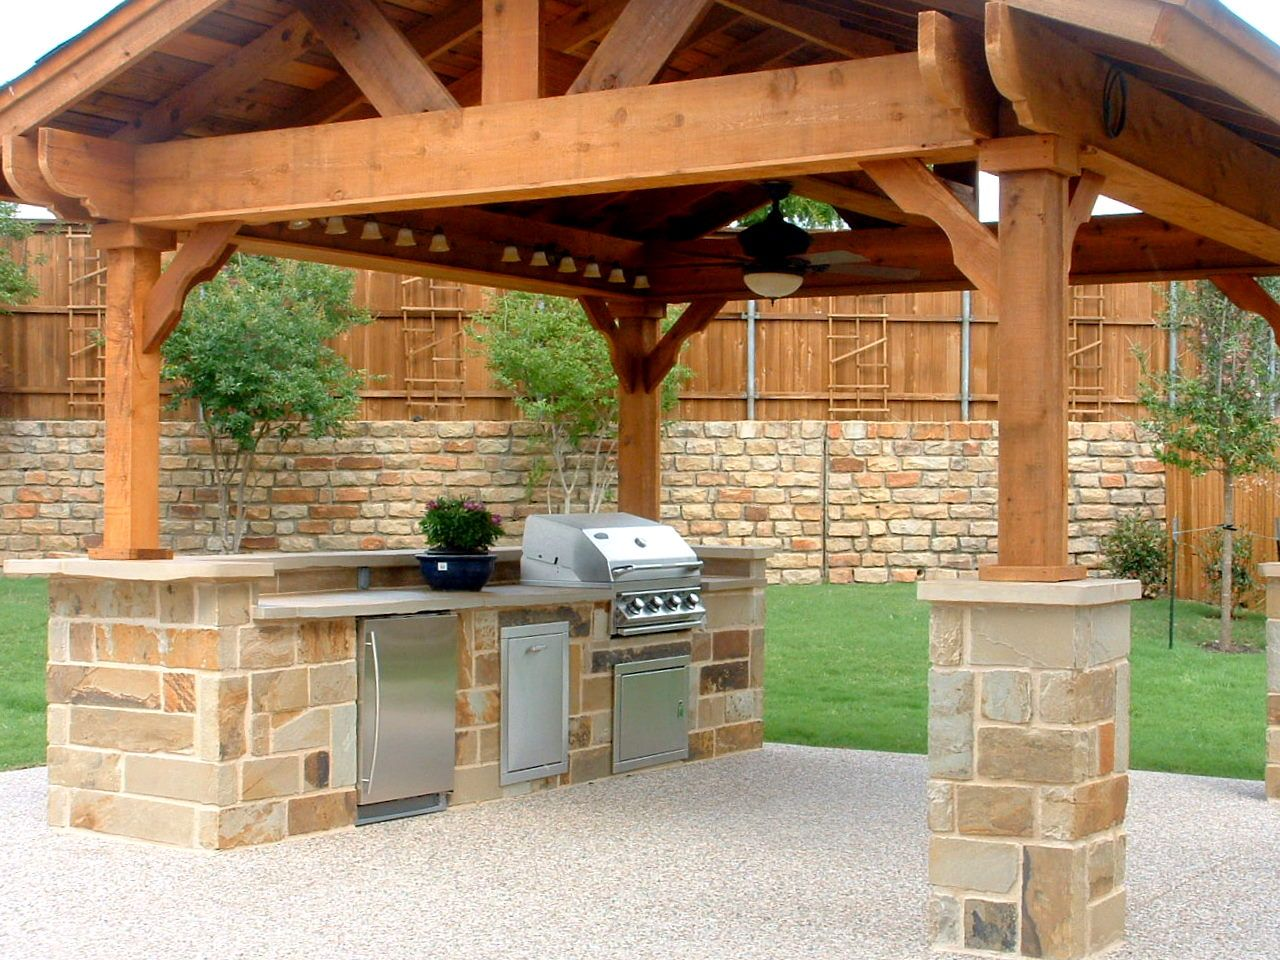 Bbq Design Ideas fa3d6f634c8bc2649166598ce2bf5bda Pop A Wood Structure Over To Give It A Space Of Its Own Outdoor Grilling Area Pinterest Outdoor Kitchens Outdoor And Cream Stone